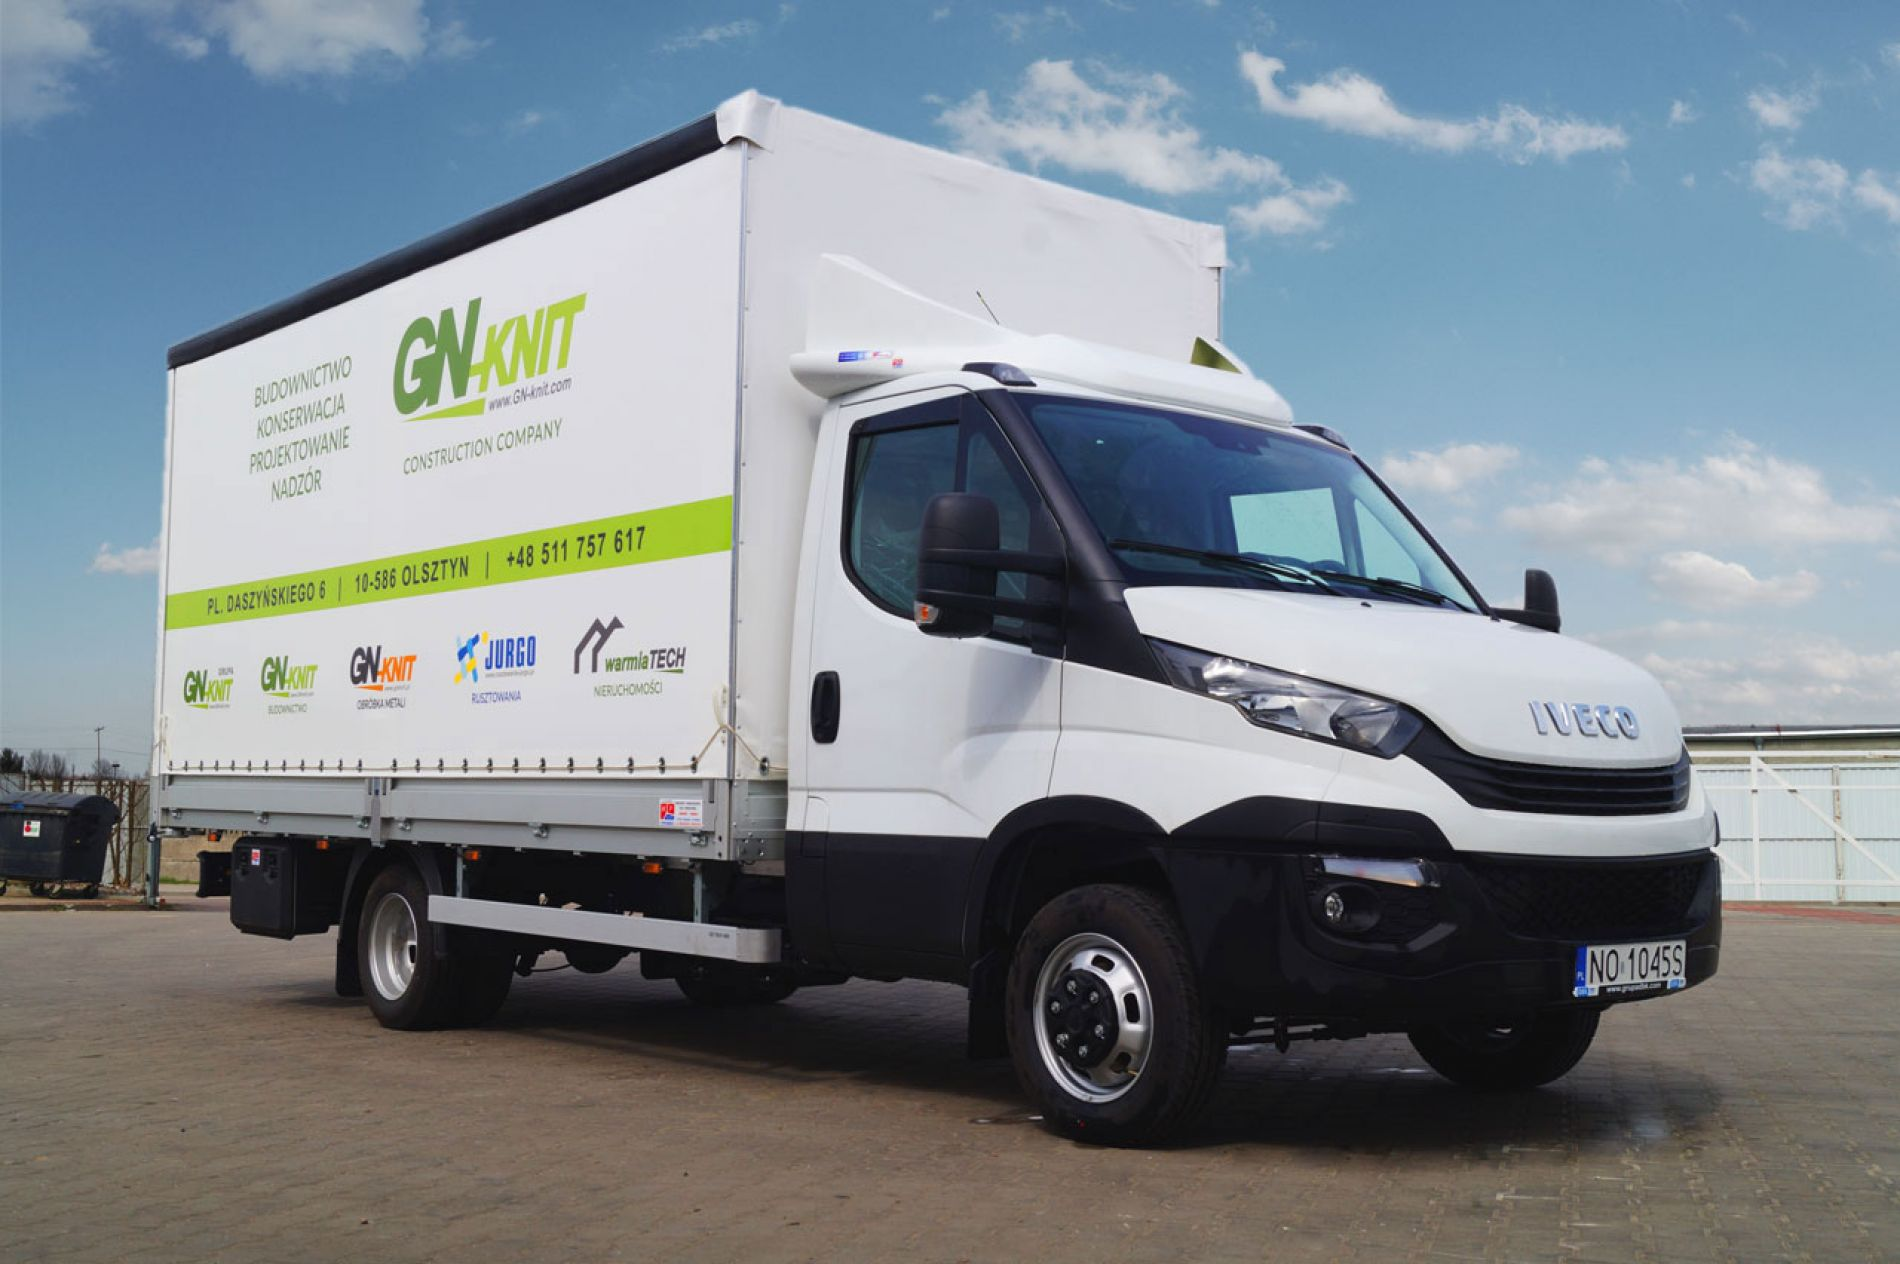 Nowe Iveco Daily dla Gn-Knit